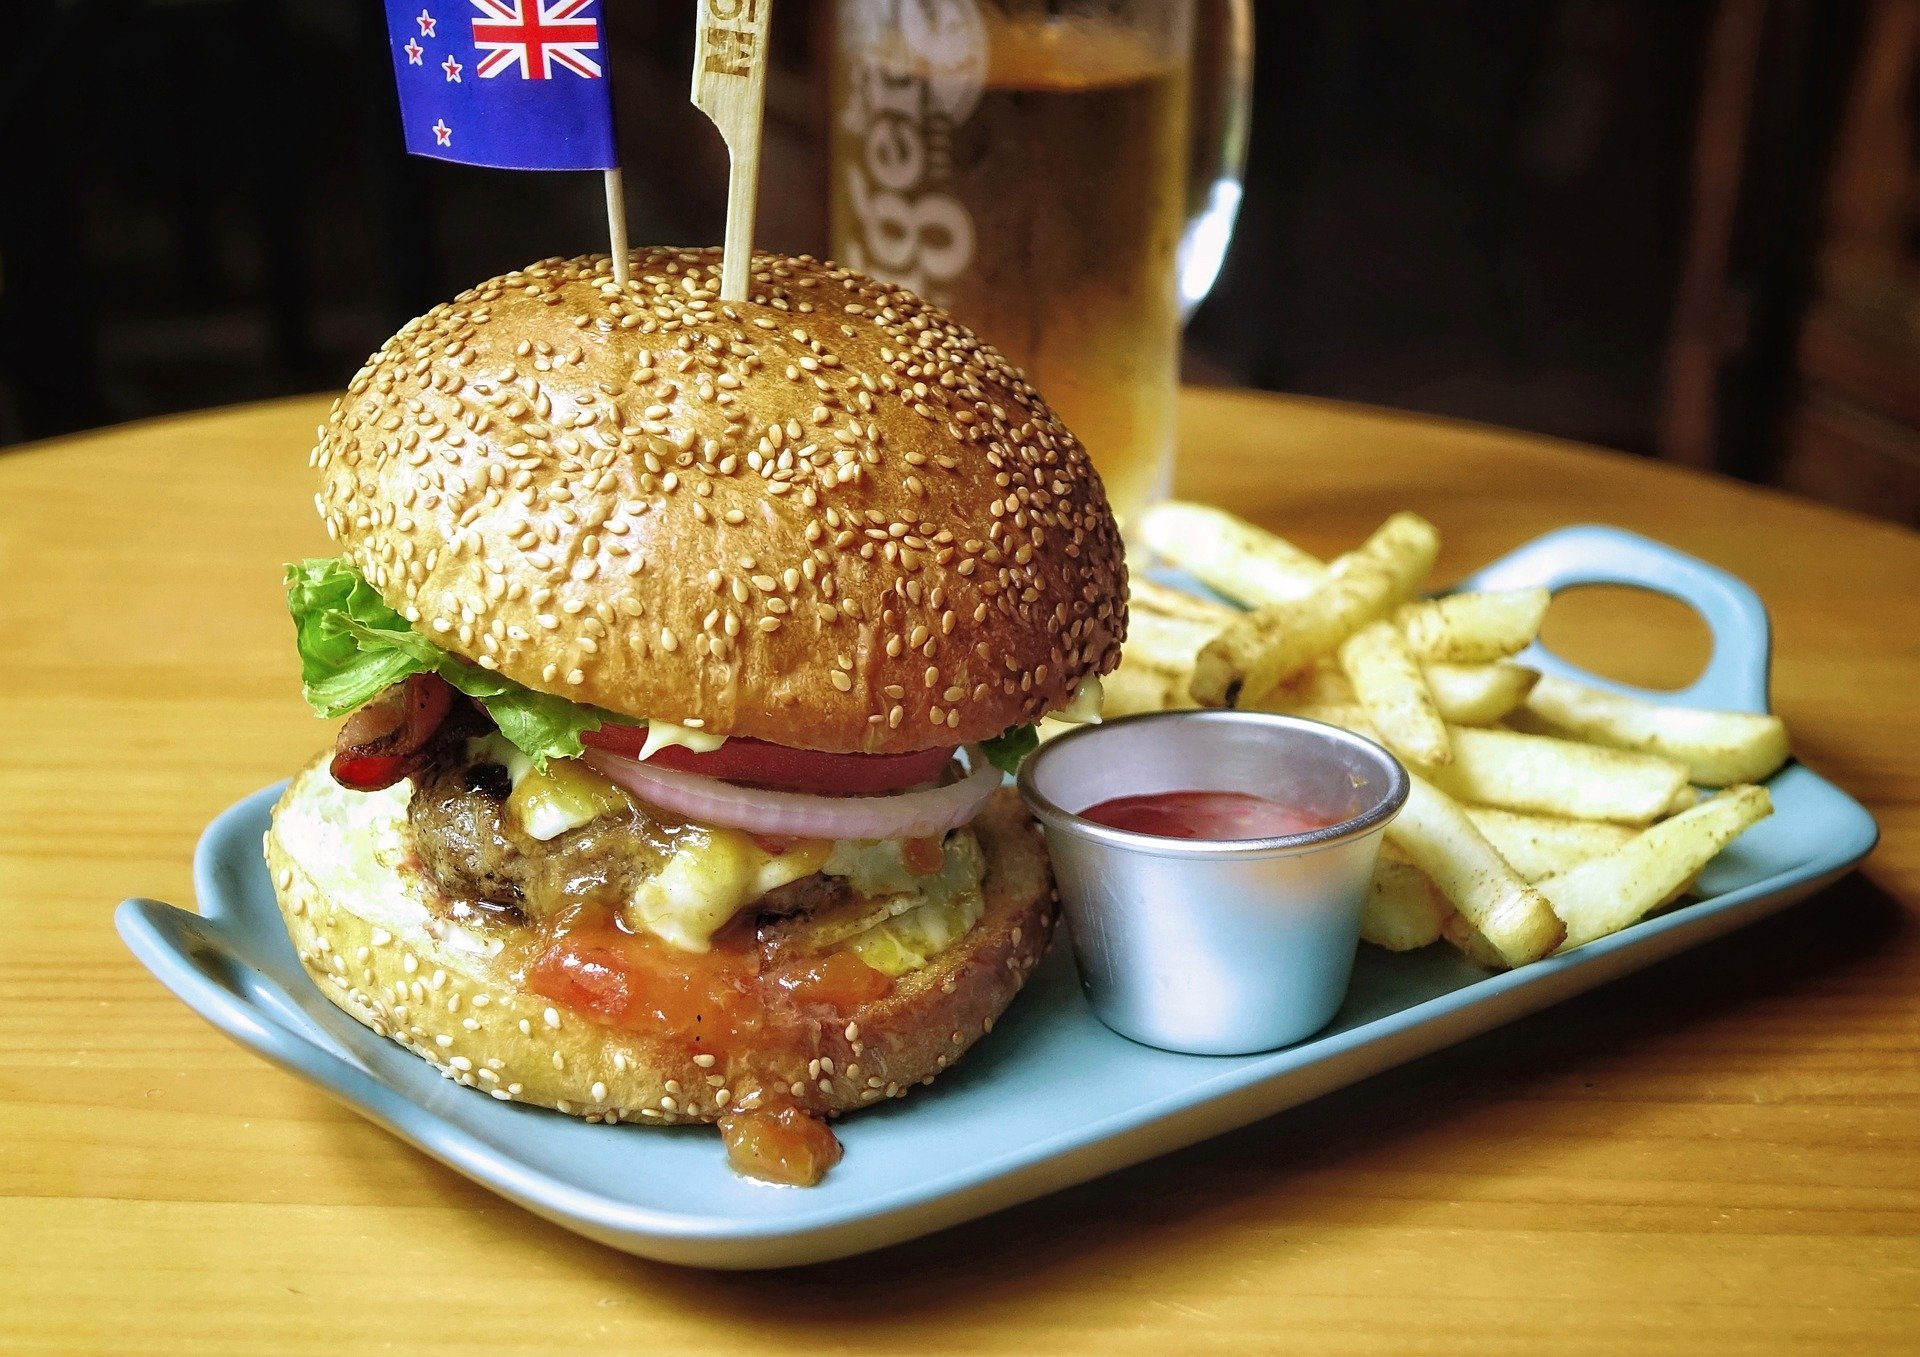 Food - Burger  French Fries Lunch Meal Hamburger Wallpaper